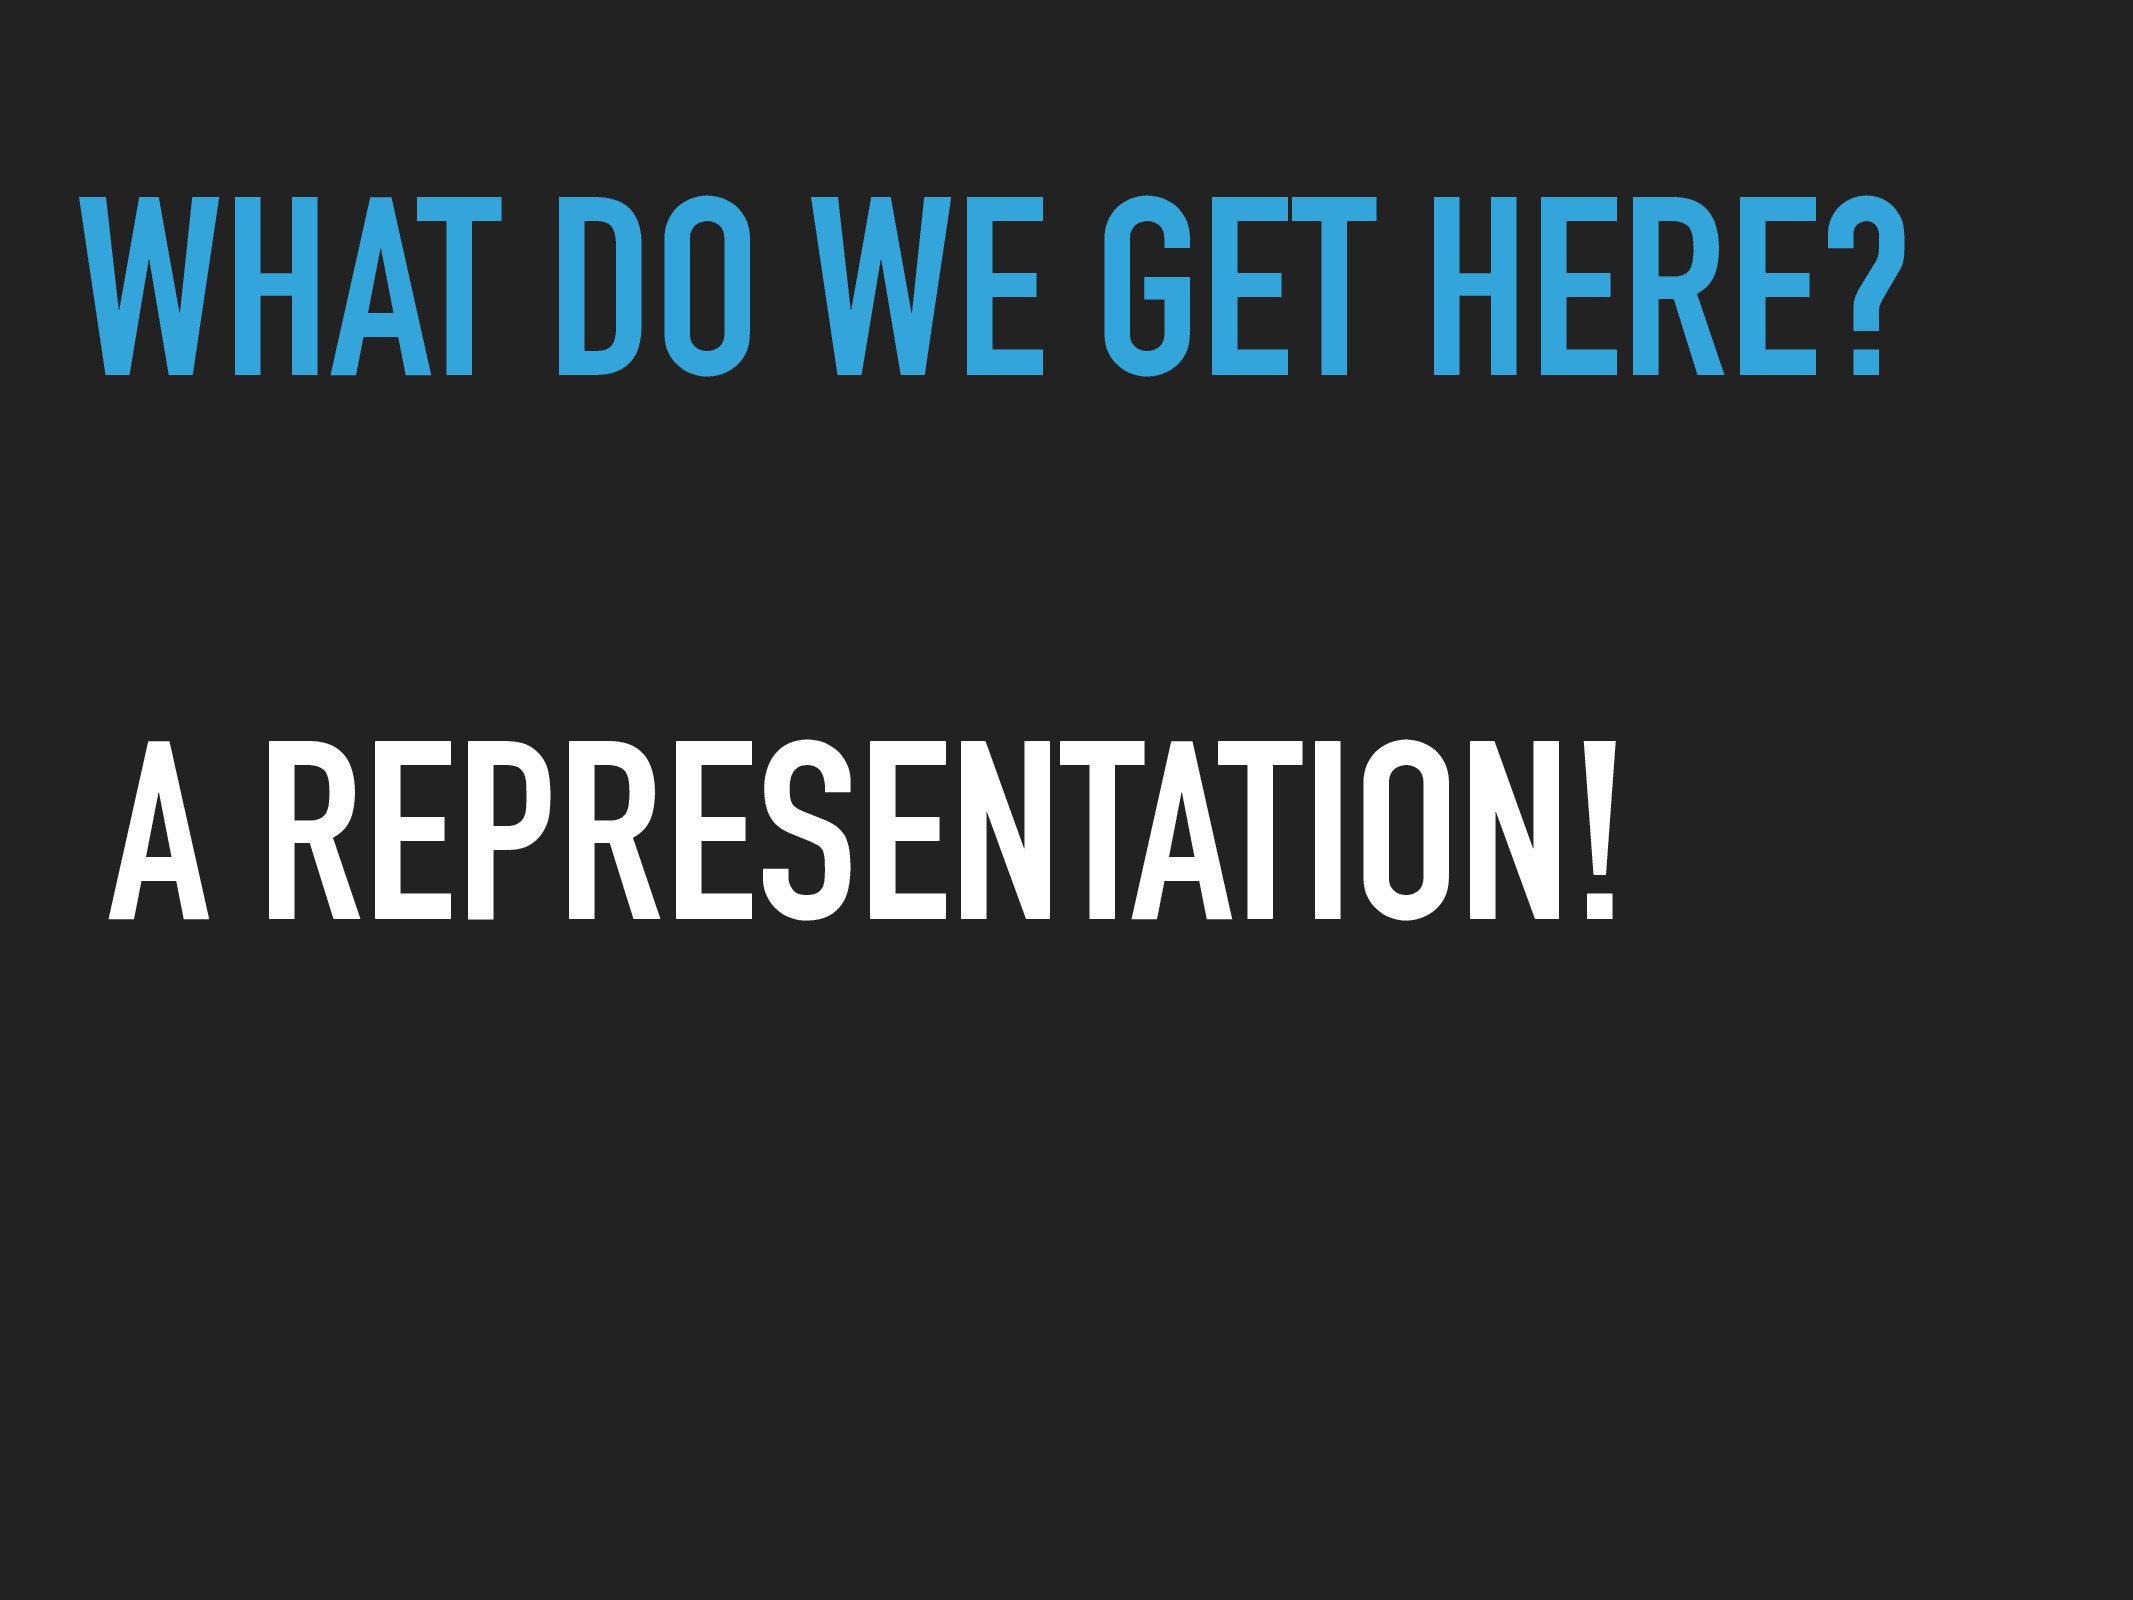 WHAT DO WE GET HERE? A REPRESENTATION!